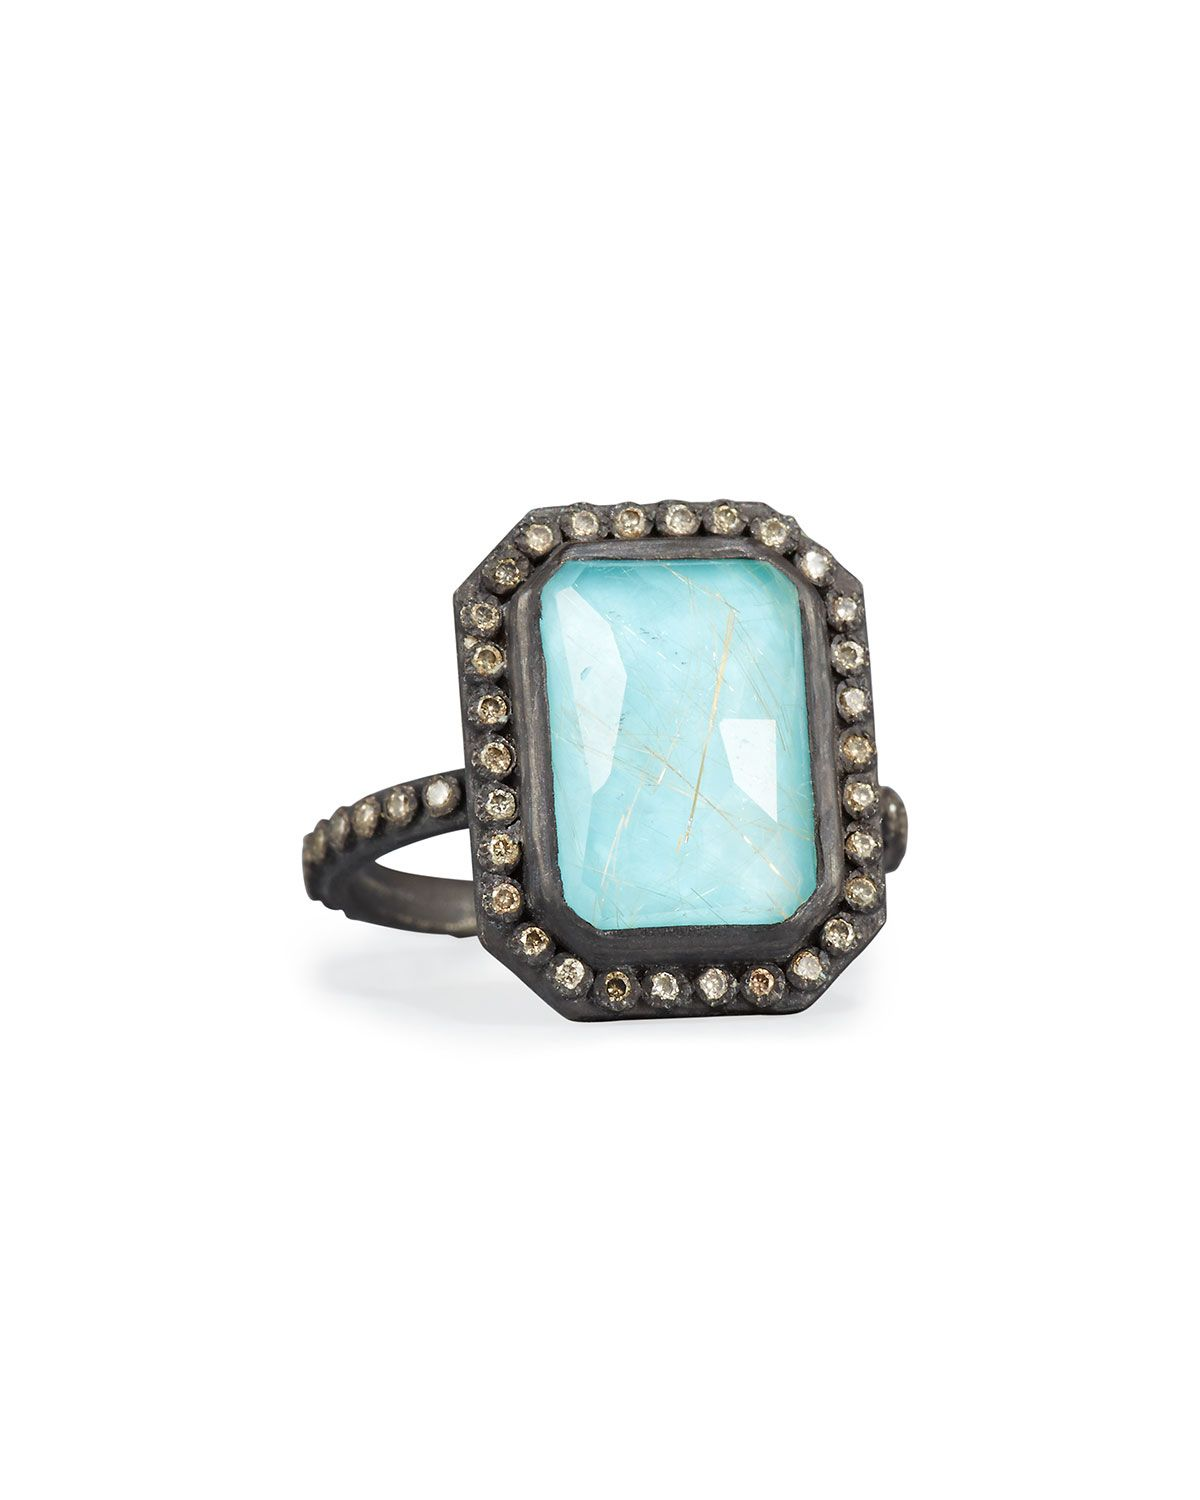 Armenta Old World Midnight Turquoise & Quartz Doublet Ring with Diamonds gV0yLxEOq6